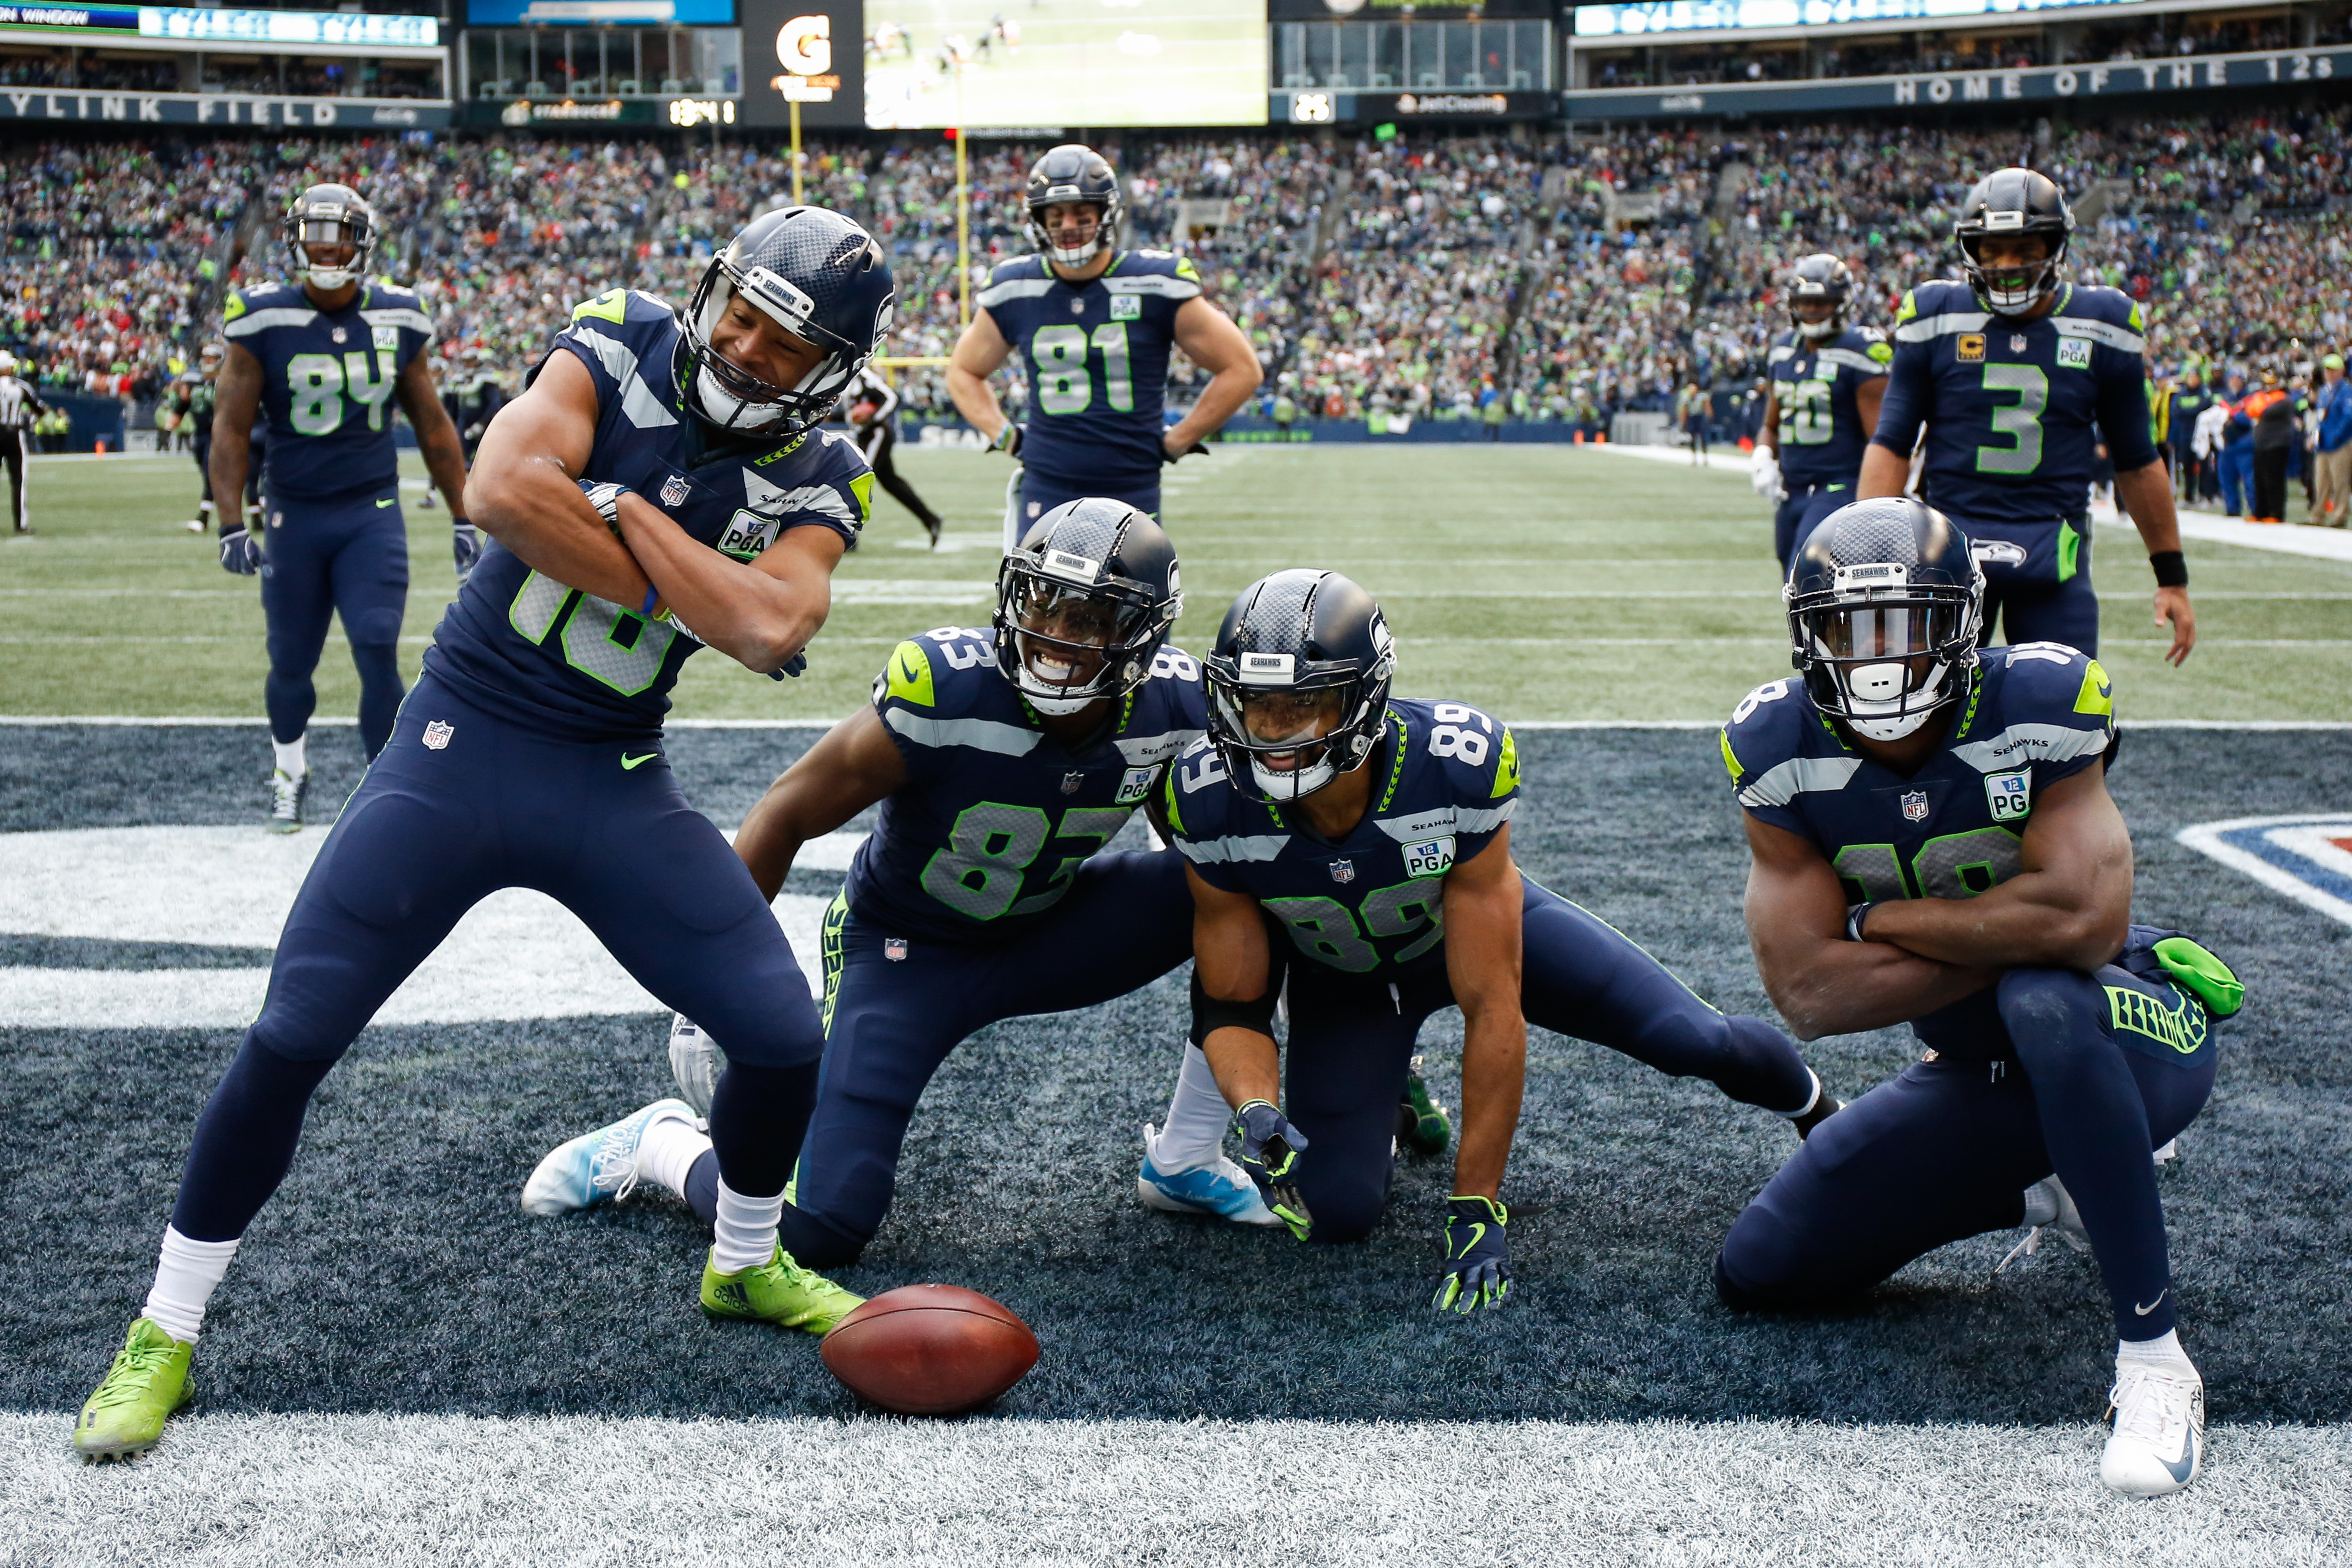 Tyler Lockett #16 of the Seattle Seahawks celebrates a second quarter touchdown with teammates in the game against the San Francisco 49ers at CenturyLink Field on December 2, 2018 in Seattle, Washington.